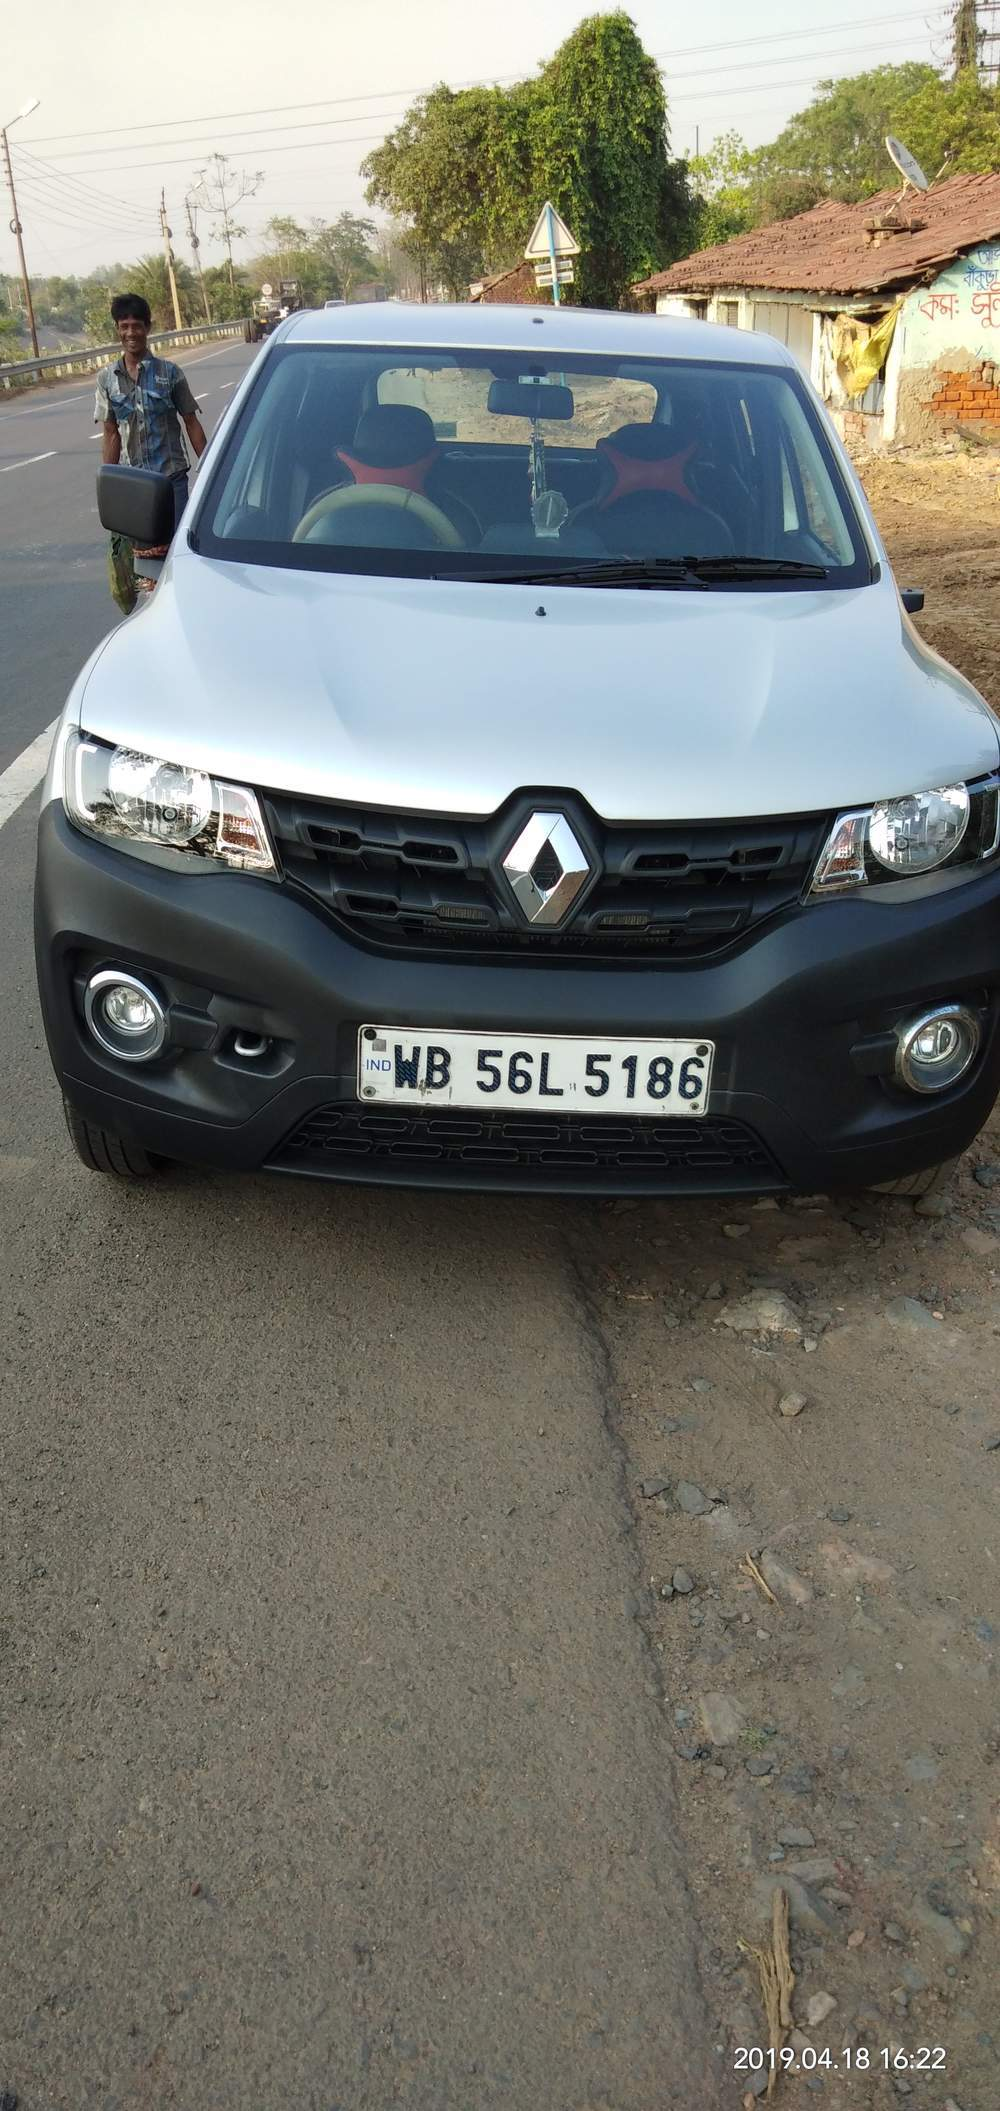 Renault Kwid Left Side View